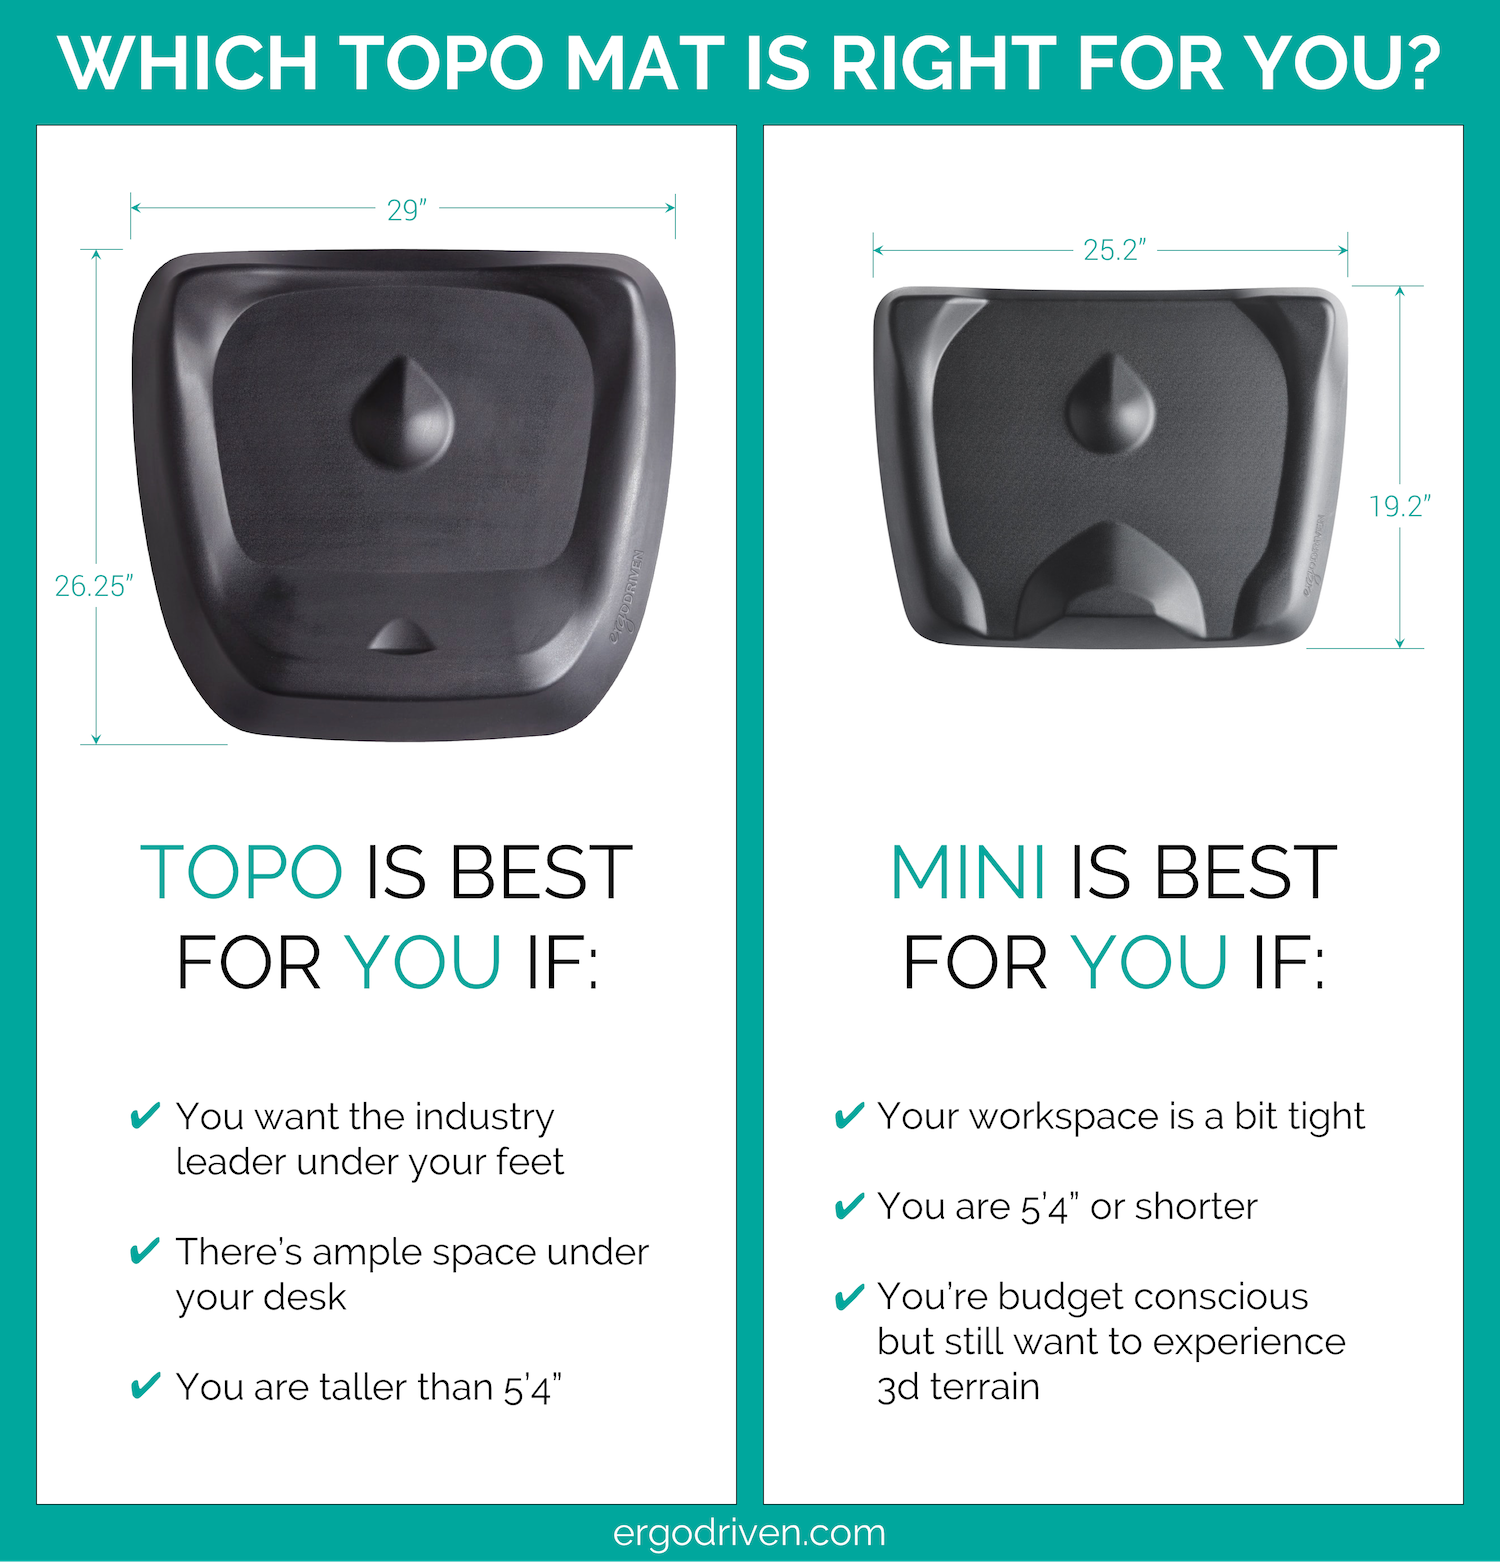 which topo mat is right for me graphic which topo mat should i get infographic